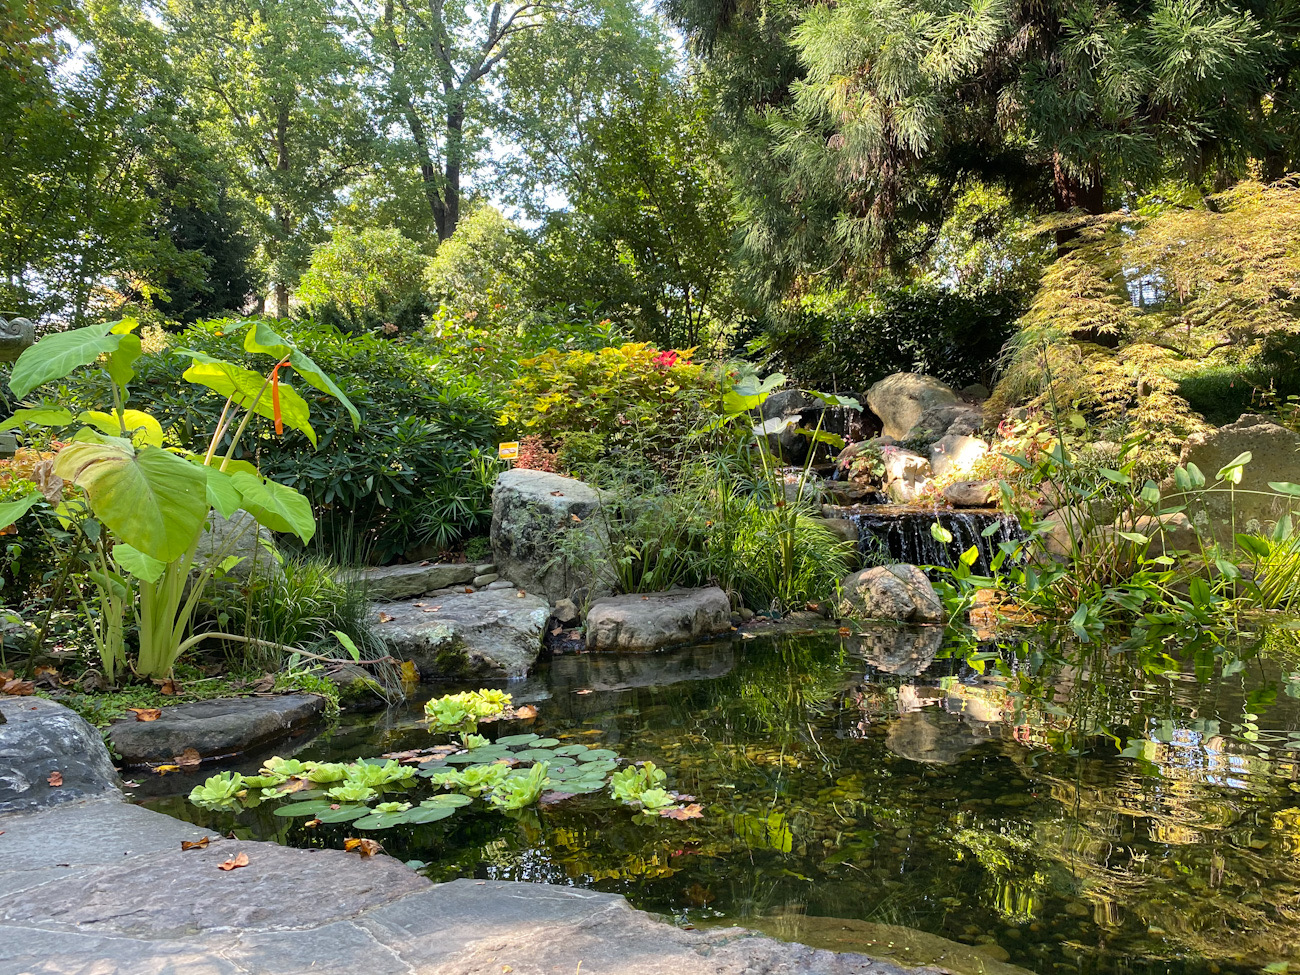 5 local gardens to see flowers in Charlotte